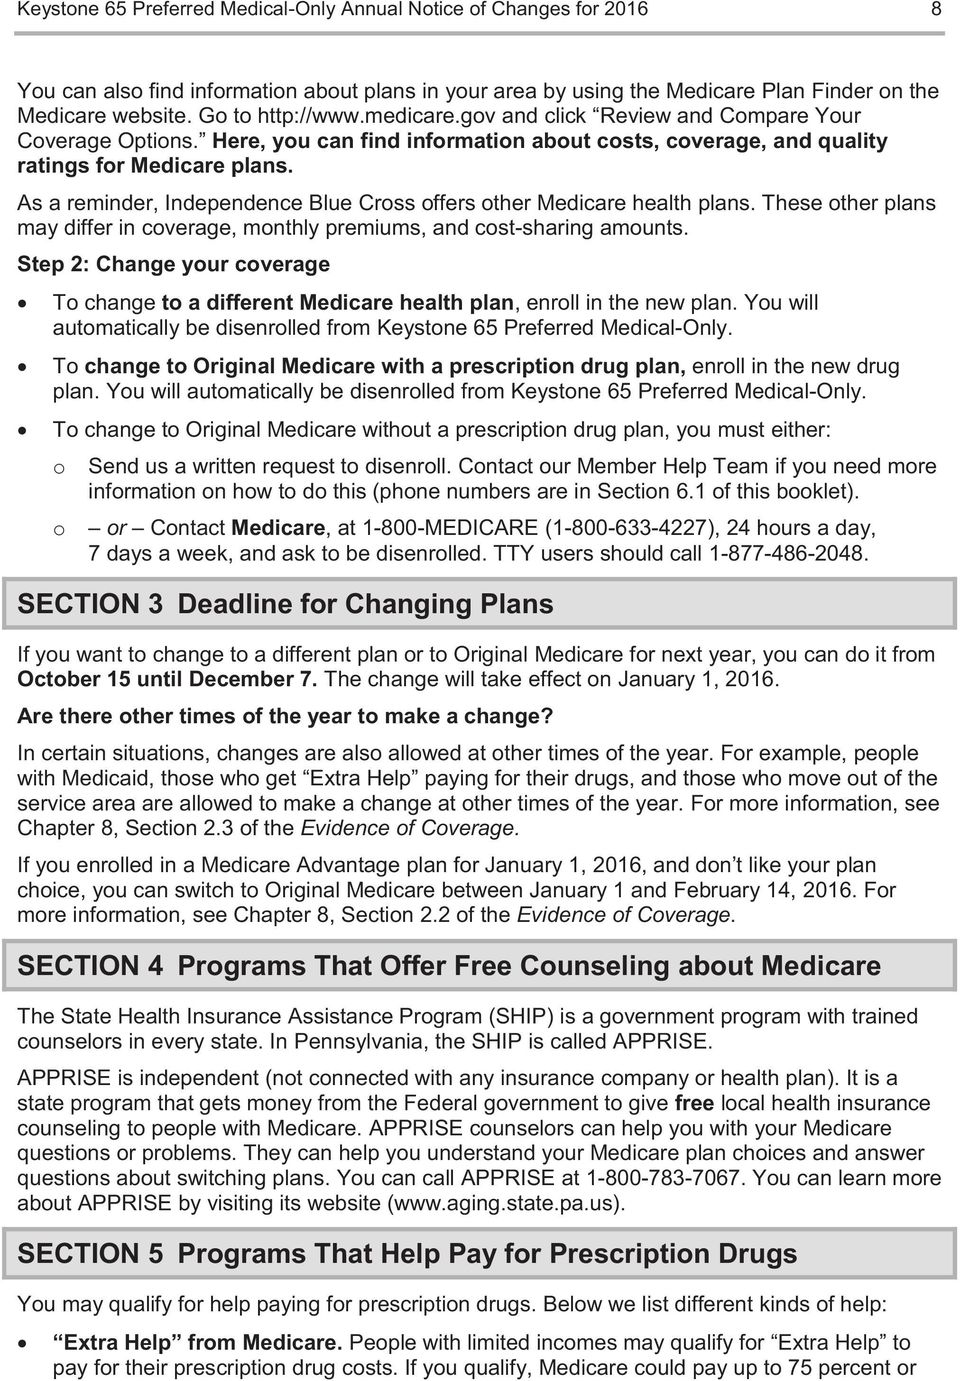 As a reminder, Independence Blue Cross offers other Medicare health plans. These other plans may differ in coverage, monthly premiums, and cost-sharing amounts.